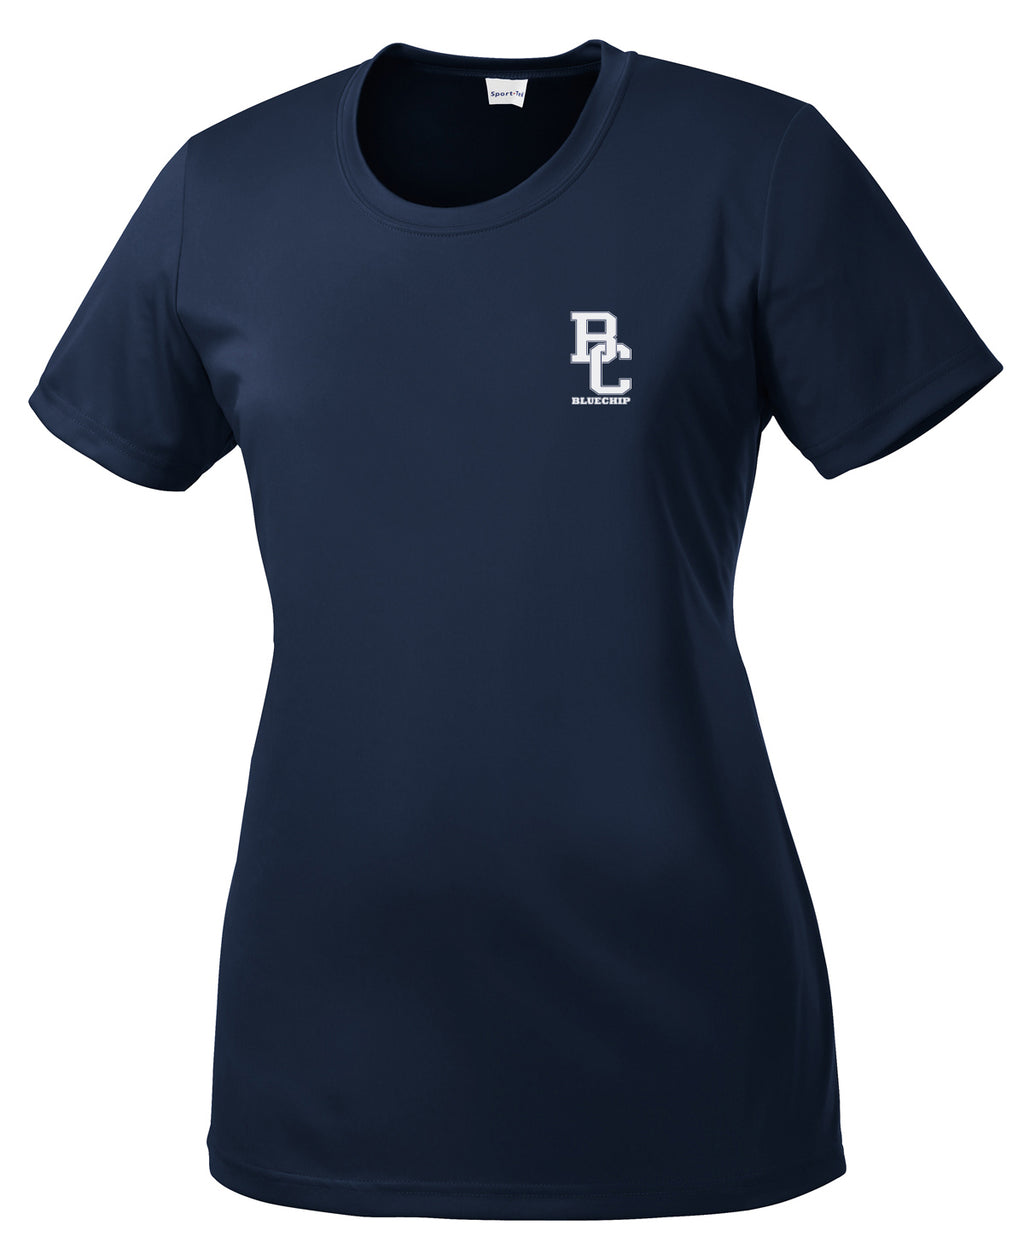 BlueChip Baseball Women's Performance Tee